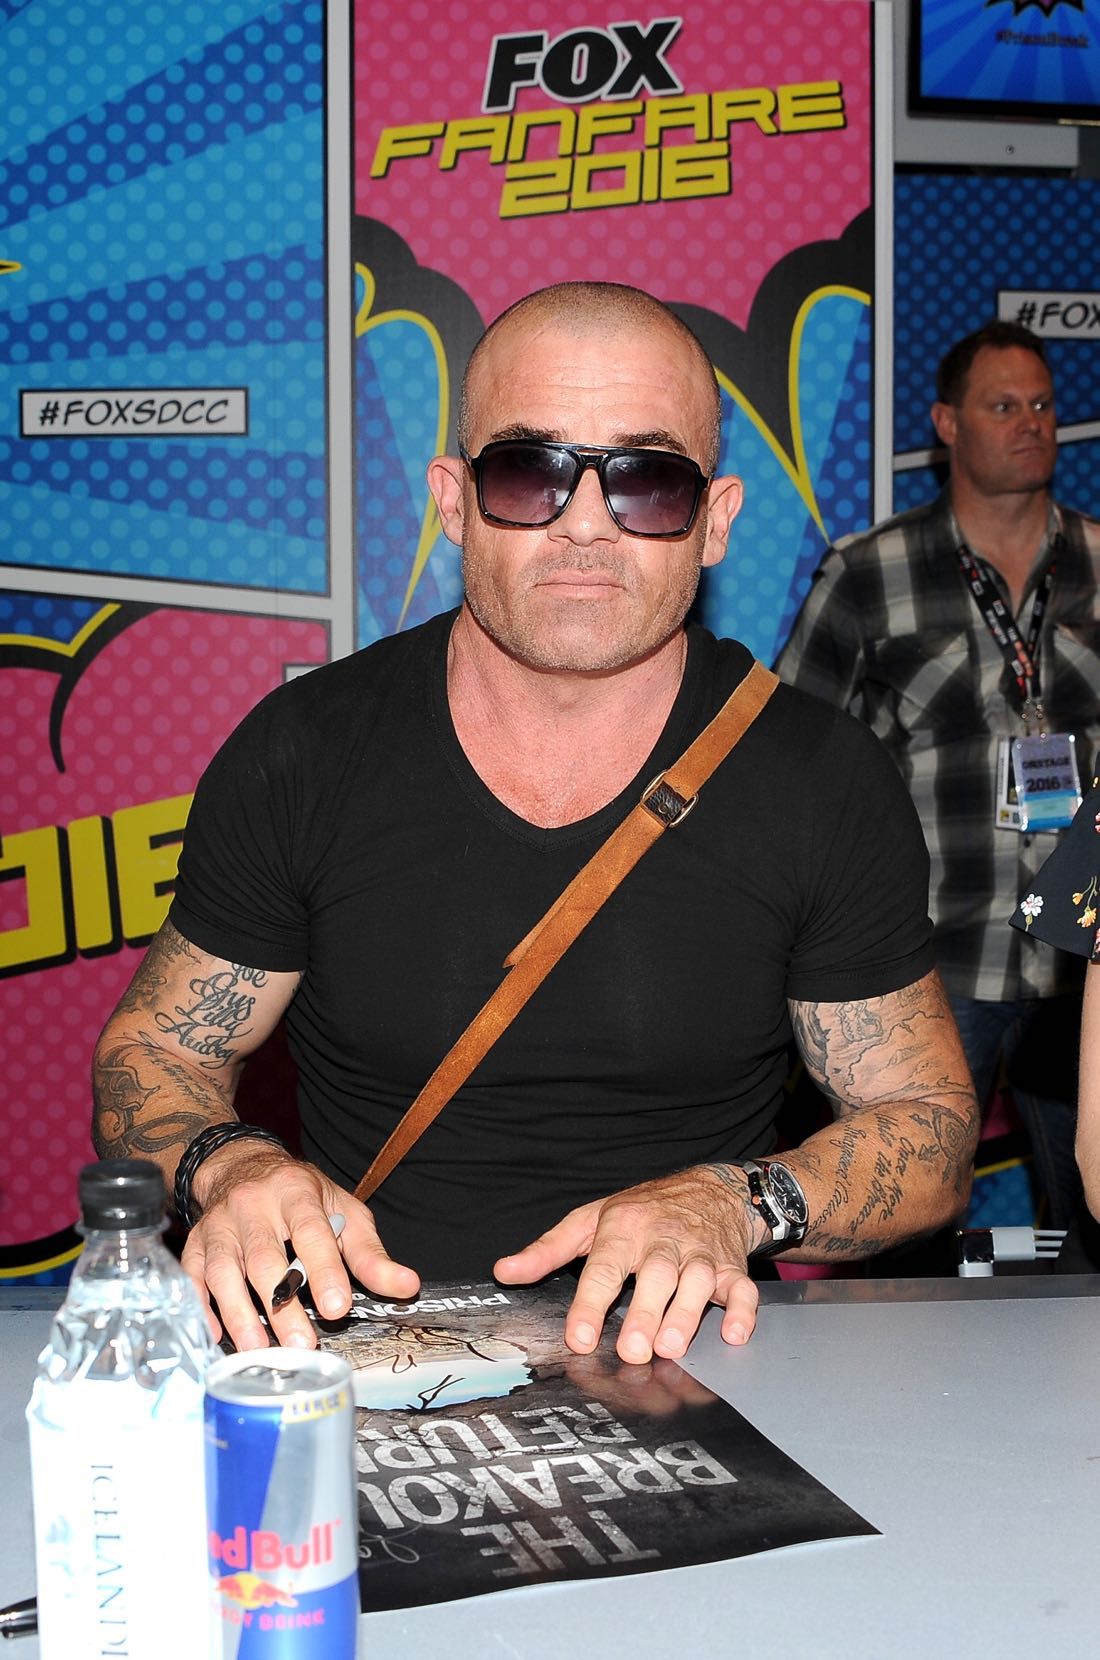 FOX FANFARE AT SAN DIEGO COMIC-CON © 2016: PRISON BREAK cast member Dominic Purcell during the PRISON BREAK booth signing on Sunday, July 24 at the FOX FANFARE AT SAN DIEGO COMIC-CON © 2016. CR: Scott Kirkland/FOX © 2016 FOX BROADCASTING